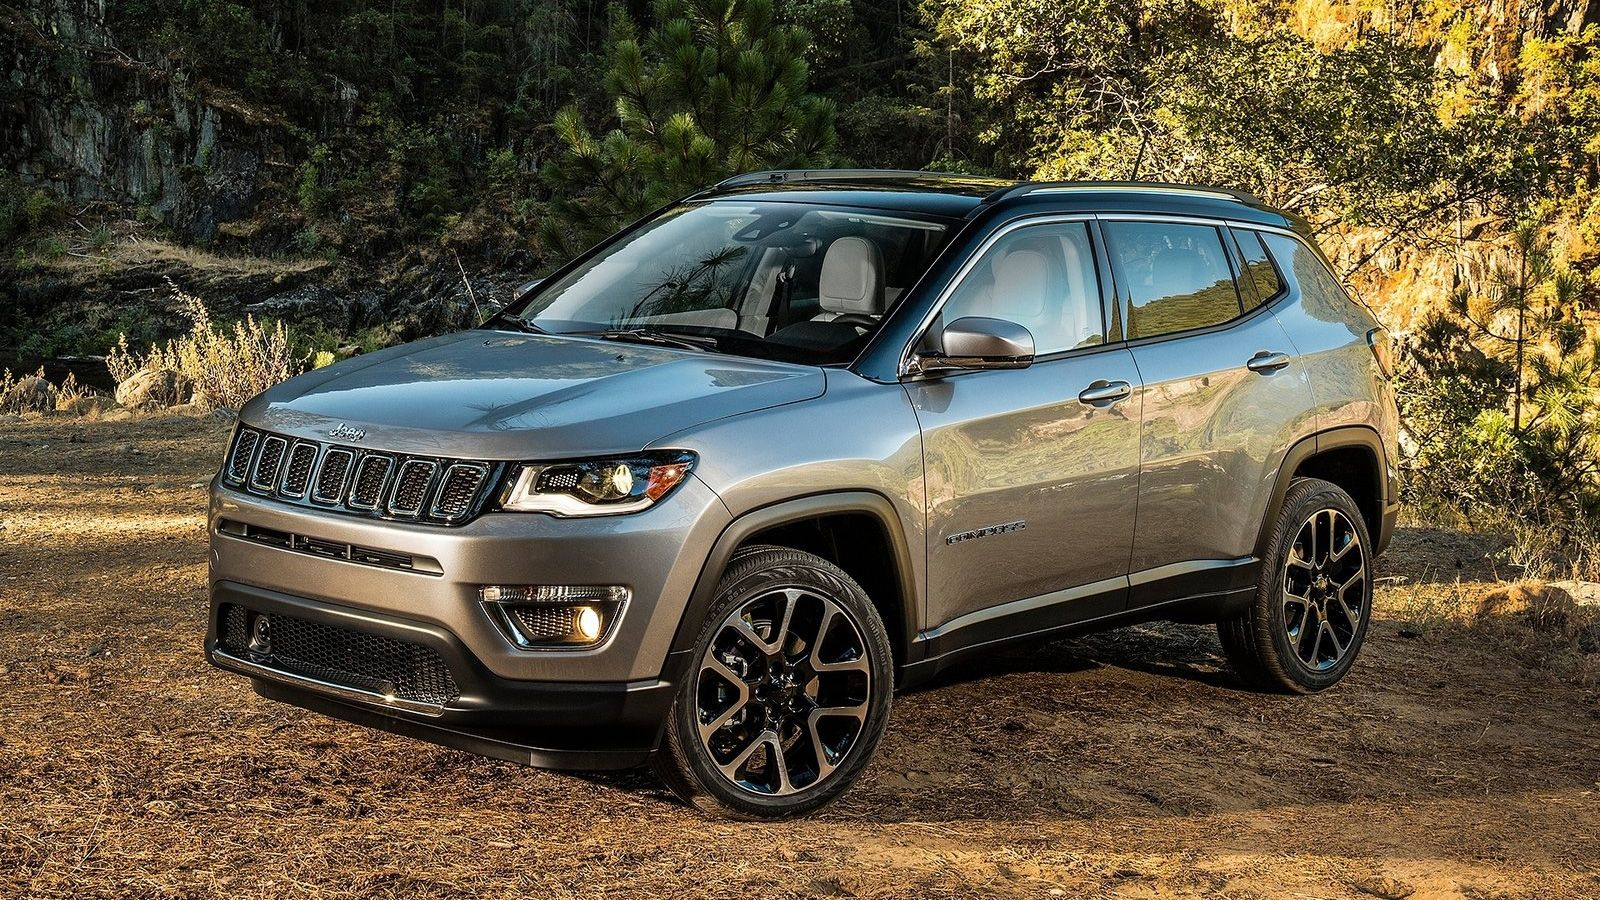 Jeep Compass 2017 Visit Indianautosblog Com For More Automotive News Jeep Compass 2017 Jeep Compass Jeep